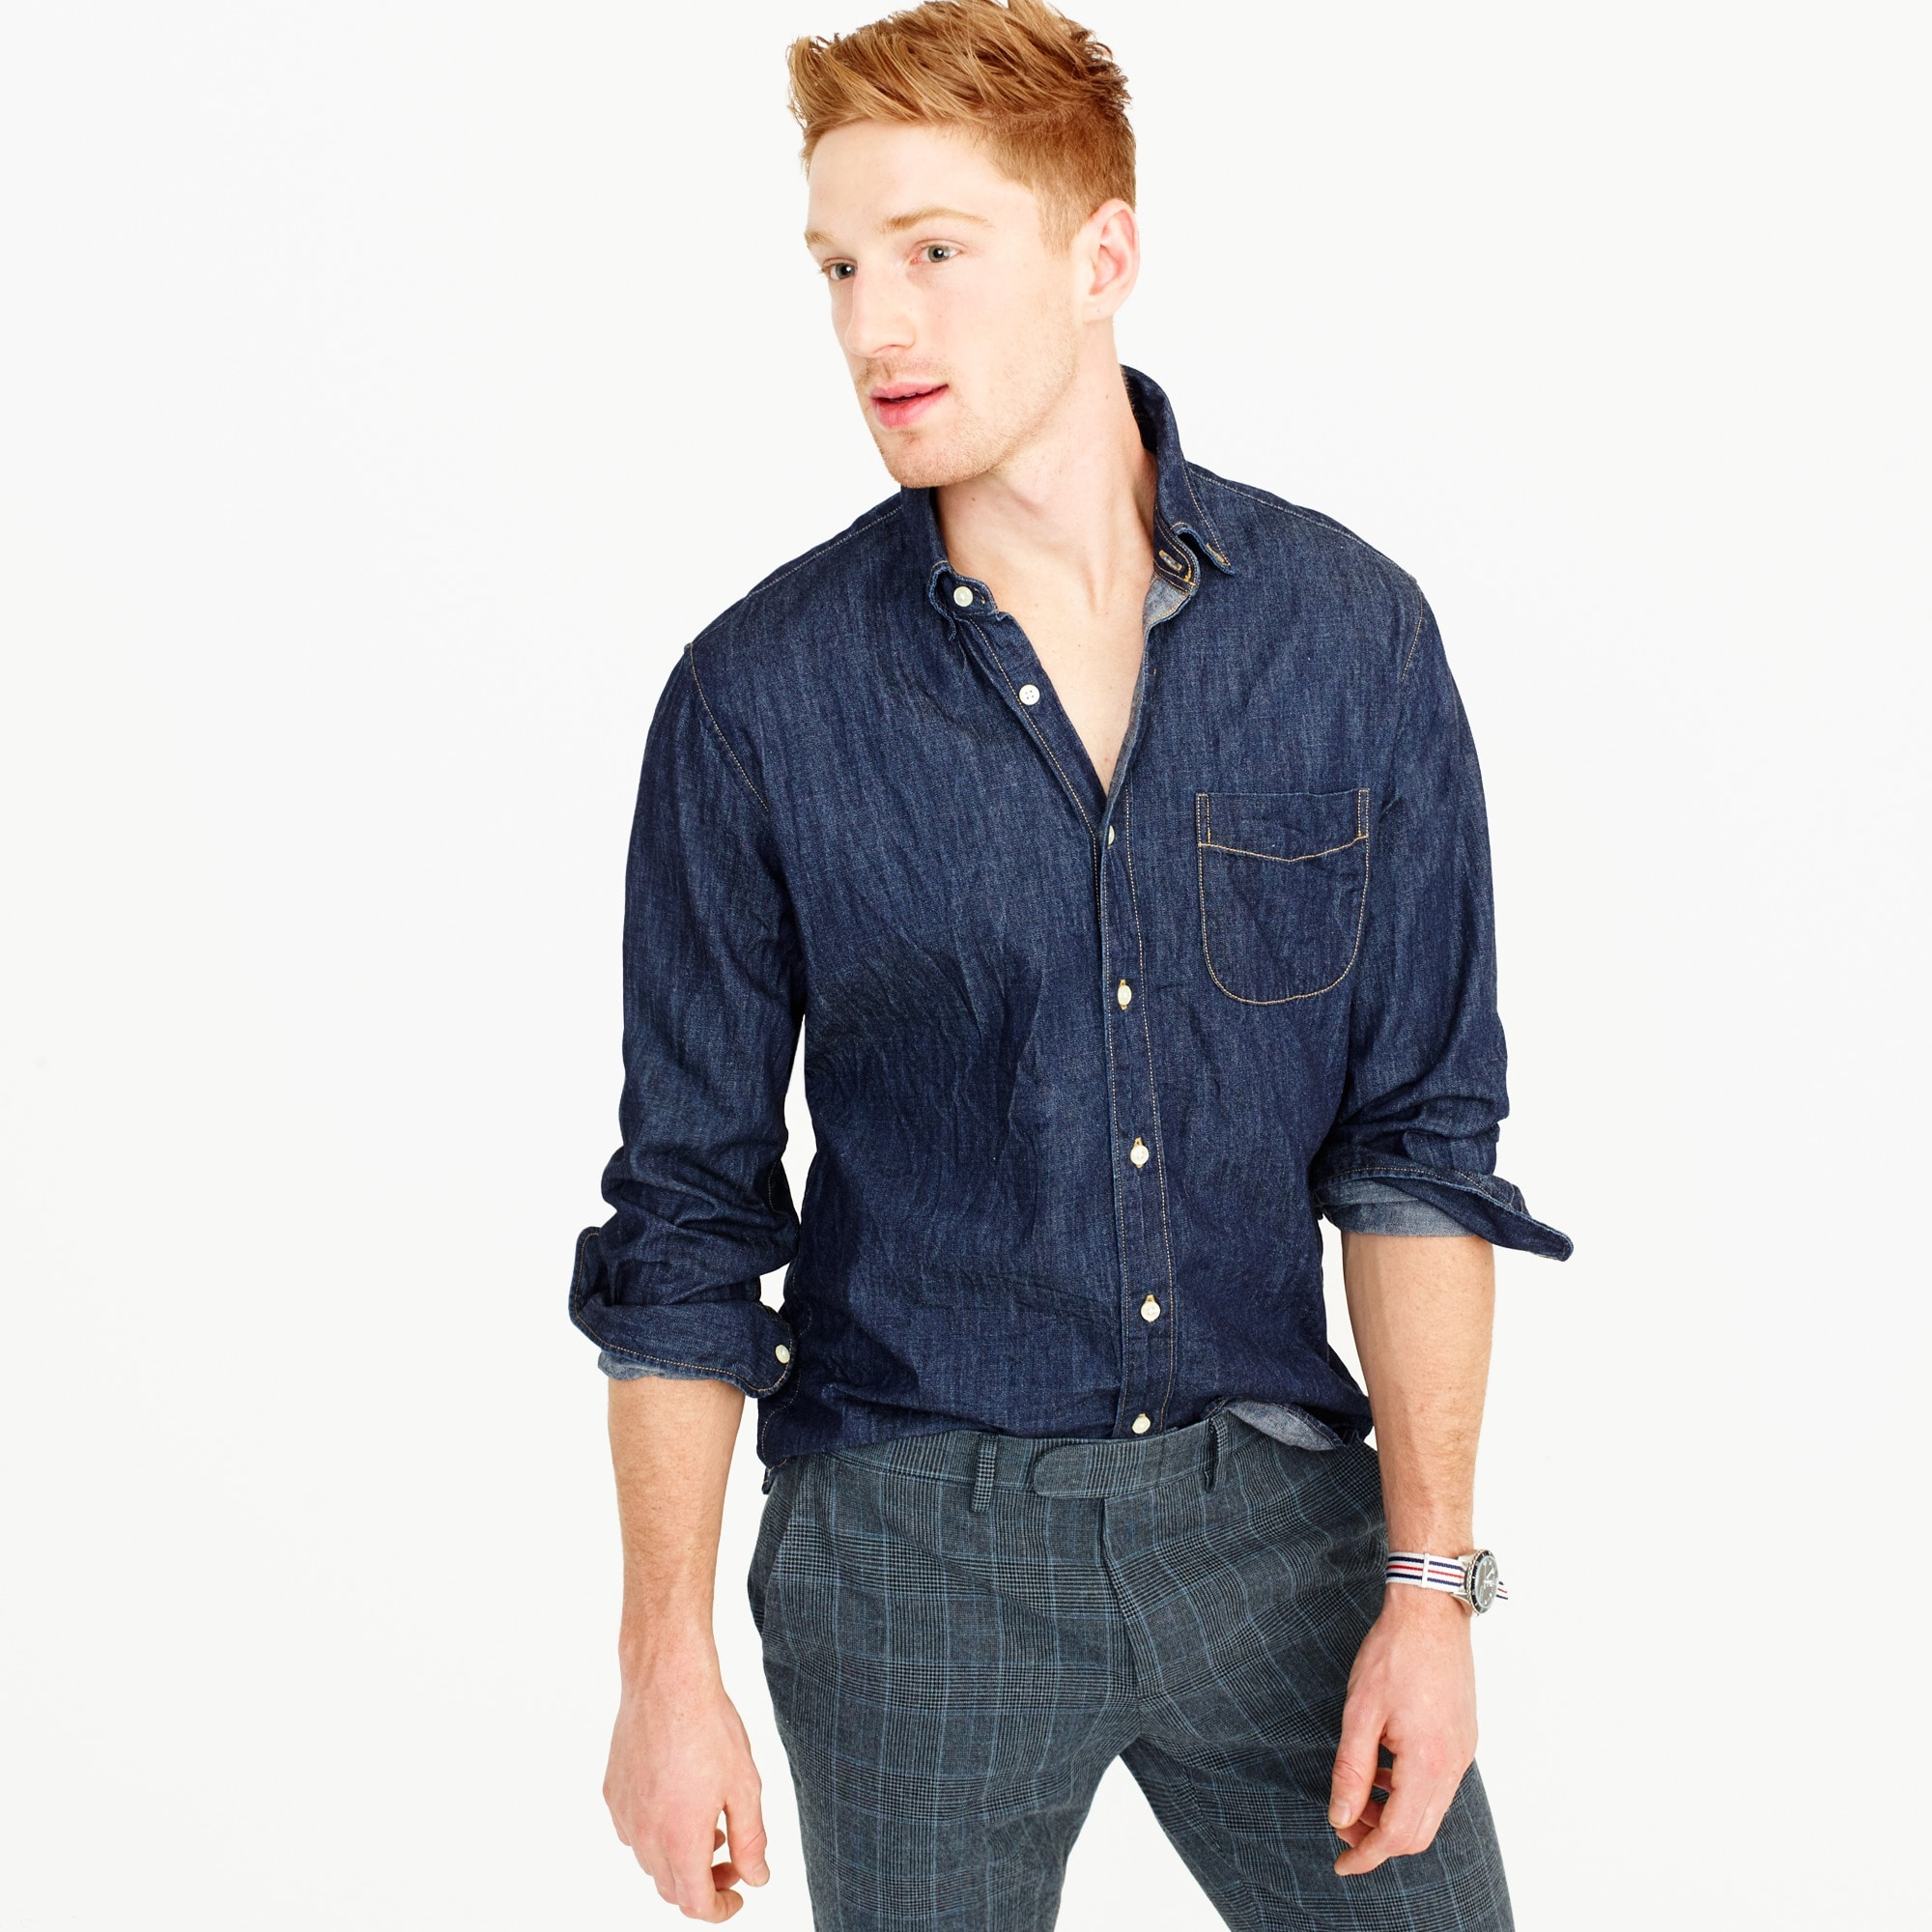 mens Slim lightweight denim shirt in dark wash